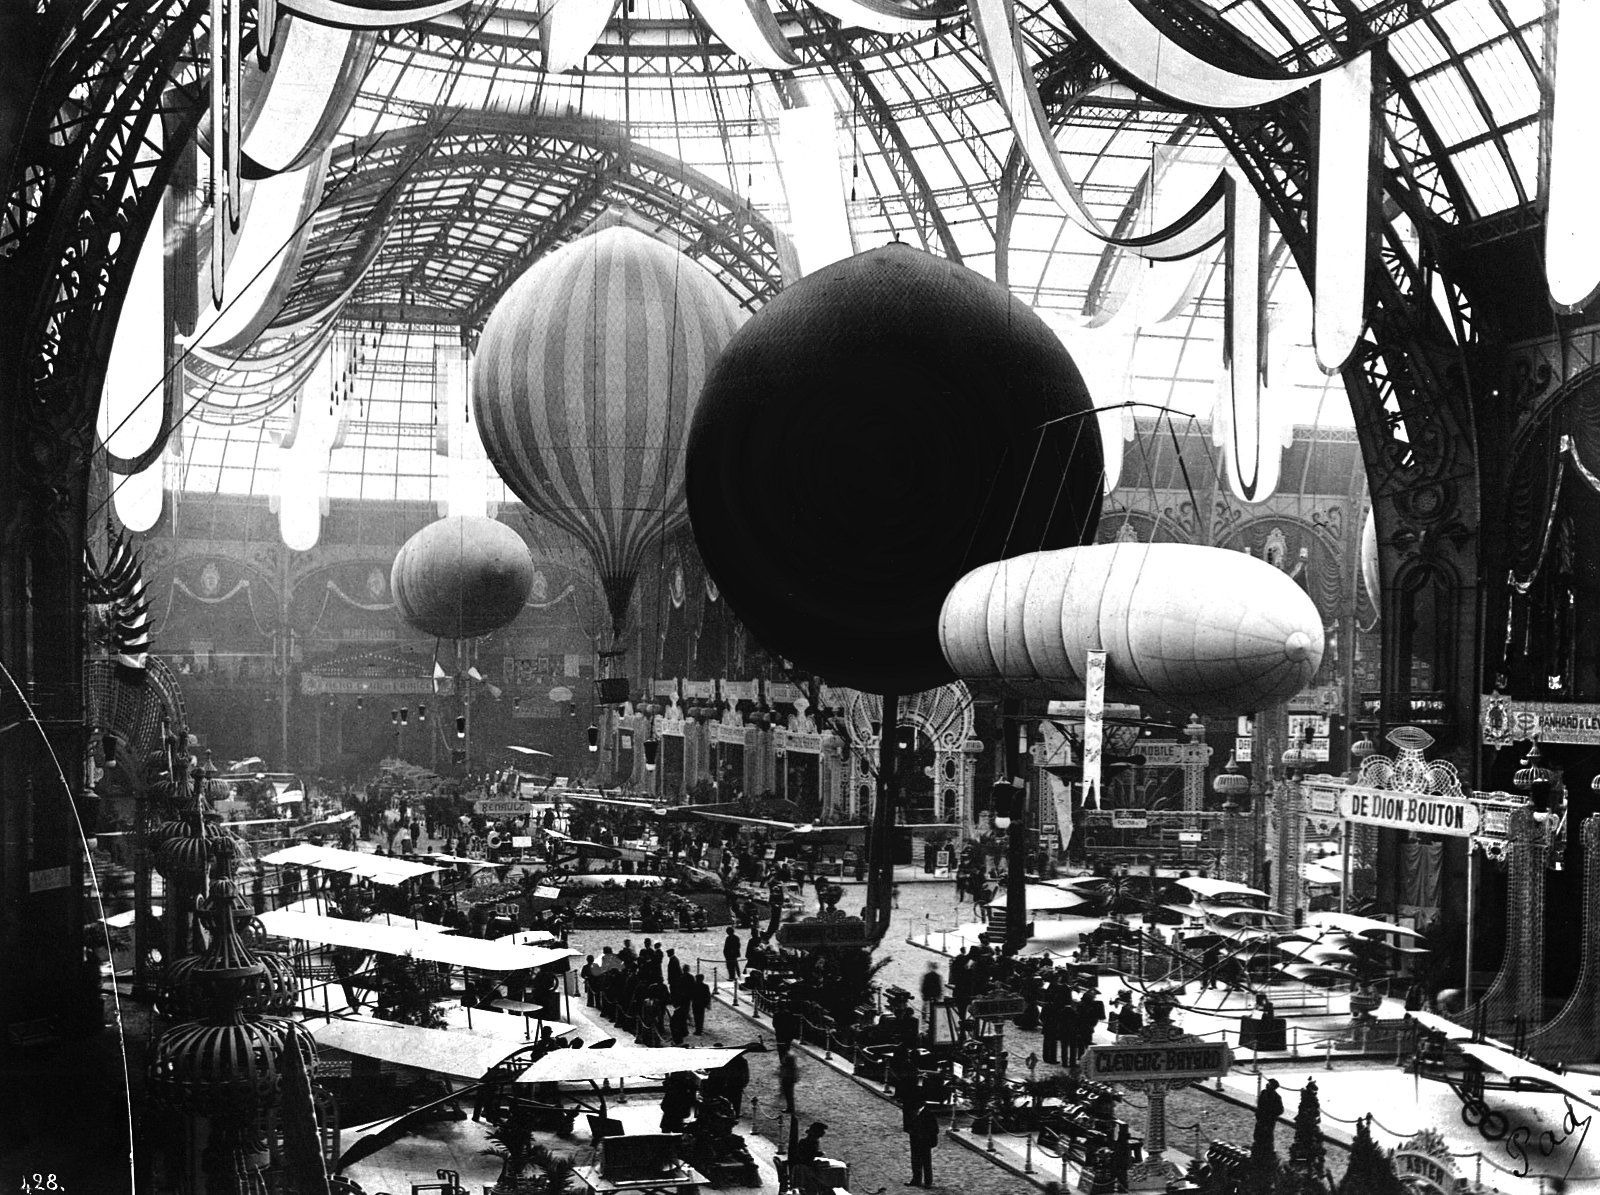 Grand palais paris 1900 expo belle epoque pinterest paris france france and vintage travel - Grand palais expo horaires ...